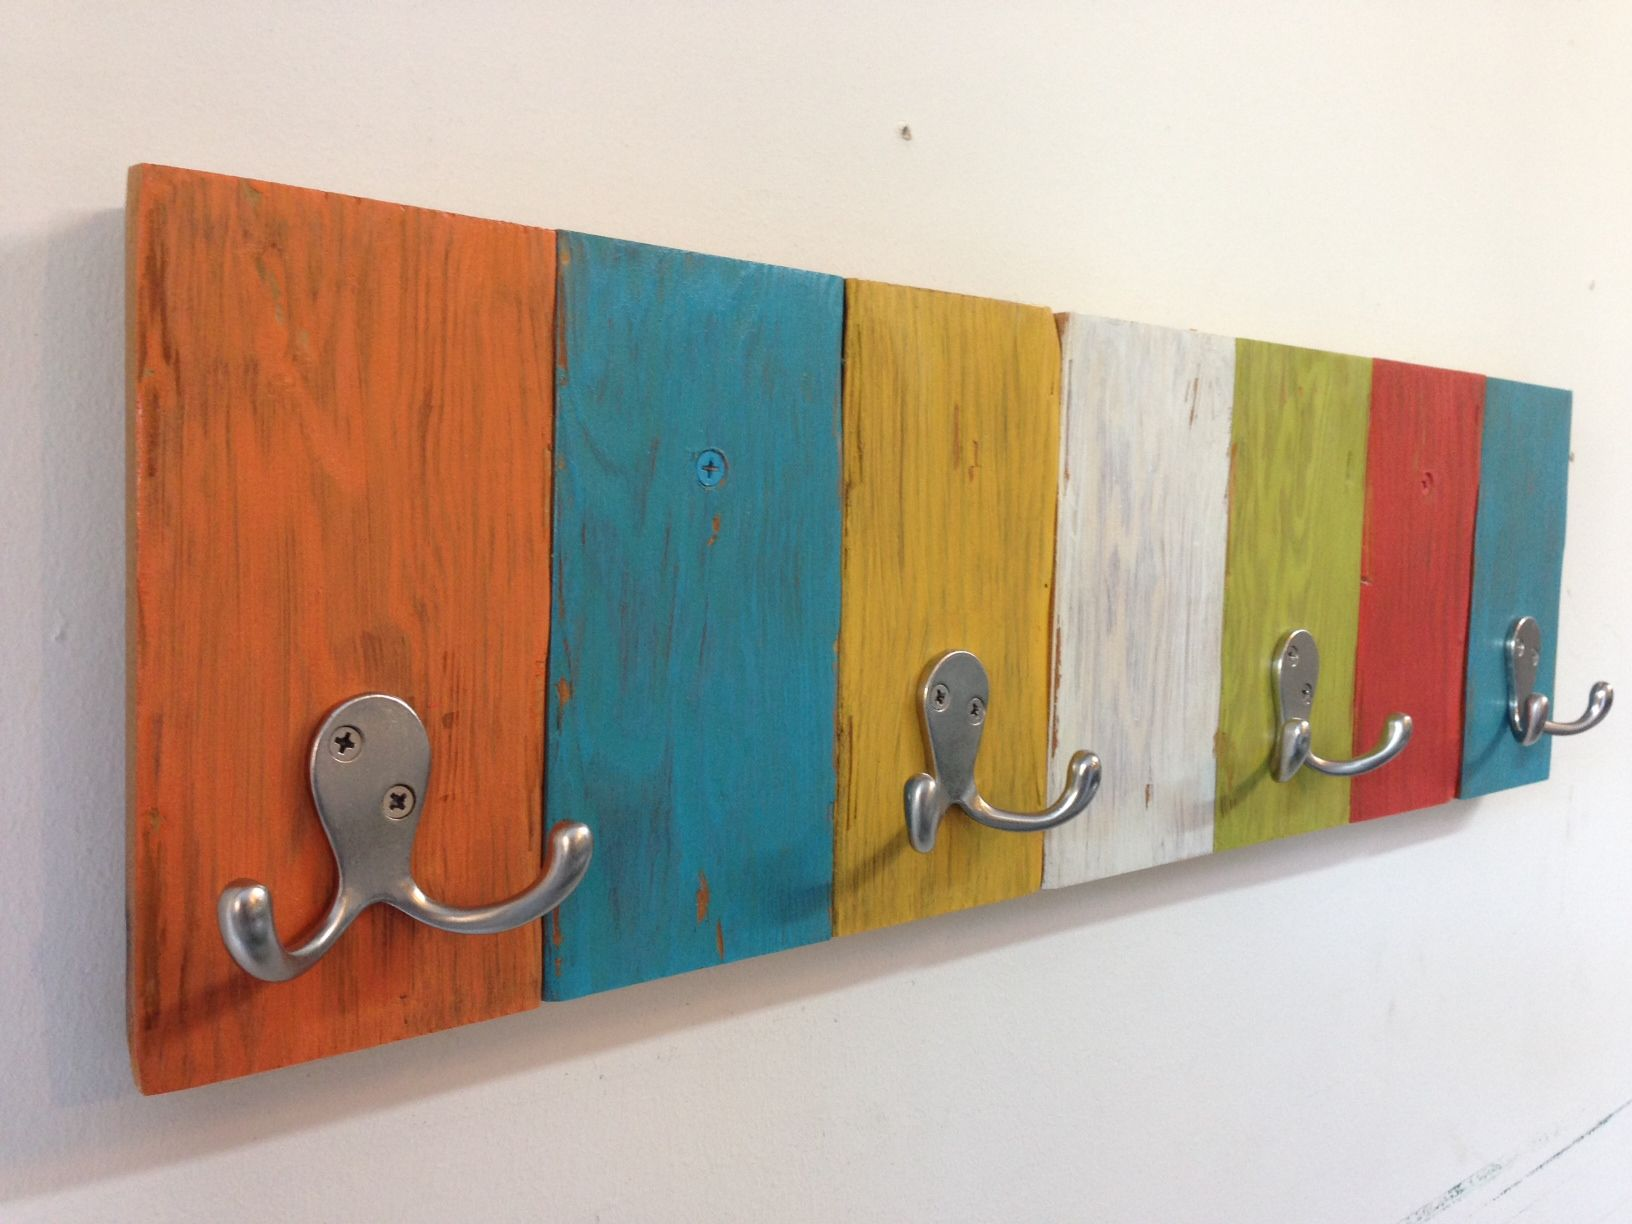 Handmade Kids Coat Hook Rack With Vibrant Fun Colors Perfect For